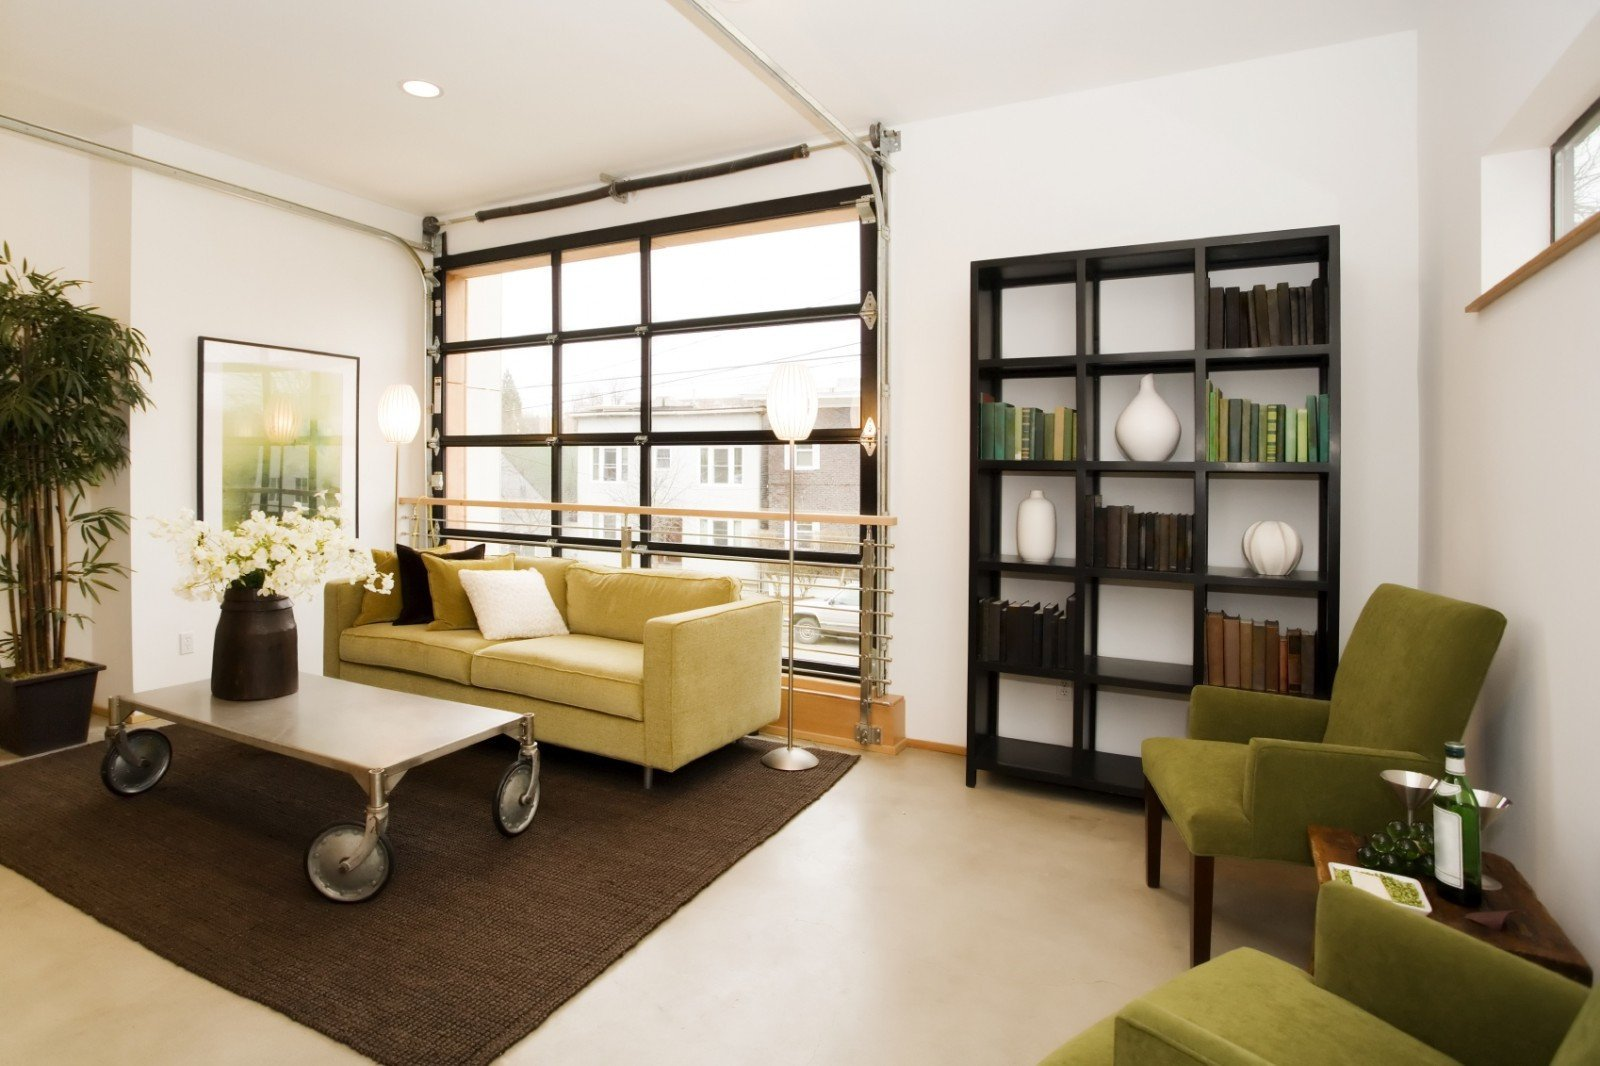 Fun Living Room Decorating Ideas Fun and Functional Garage Conversion Ideas Home Interior